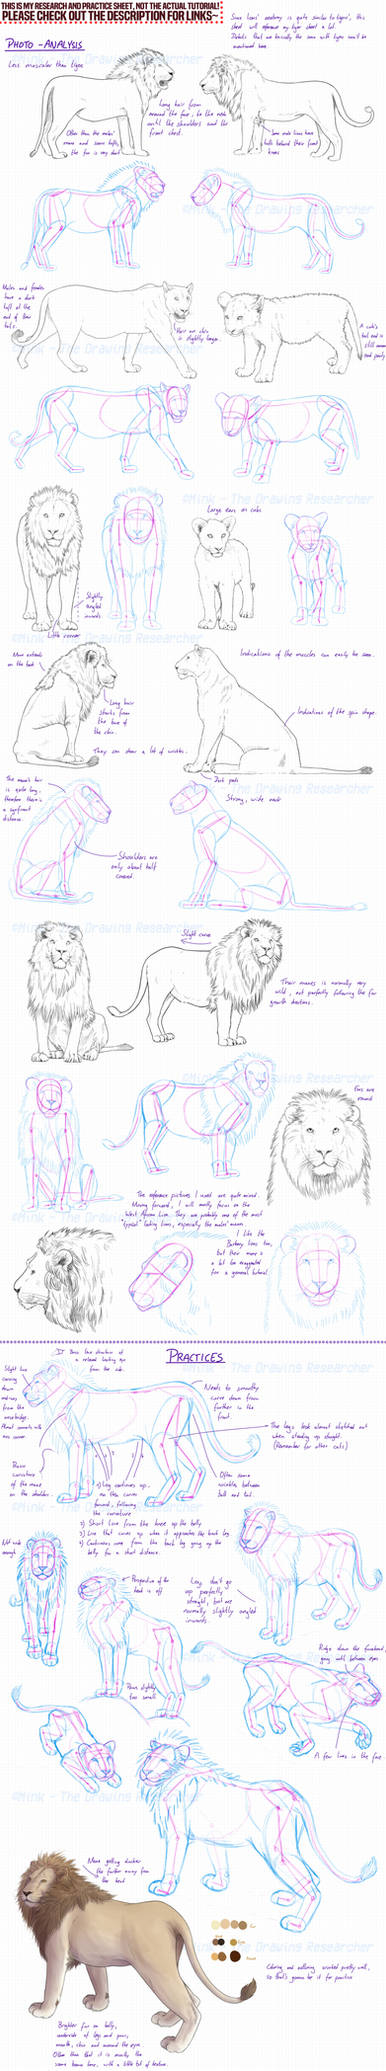 Lions - research and practice sheet